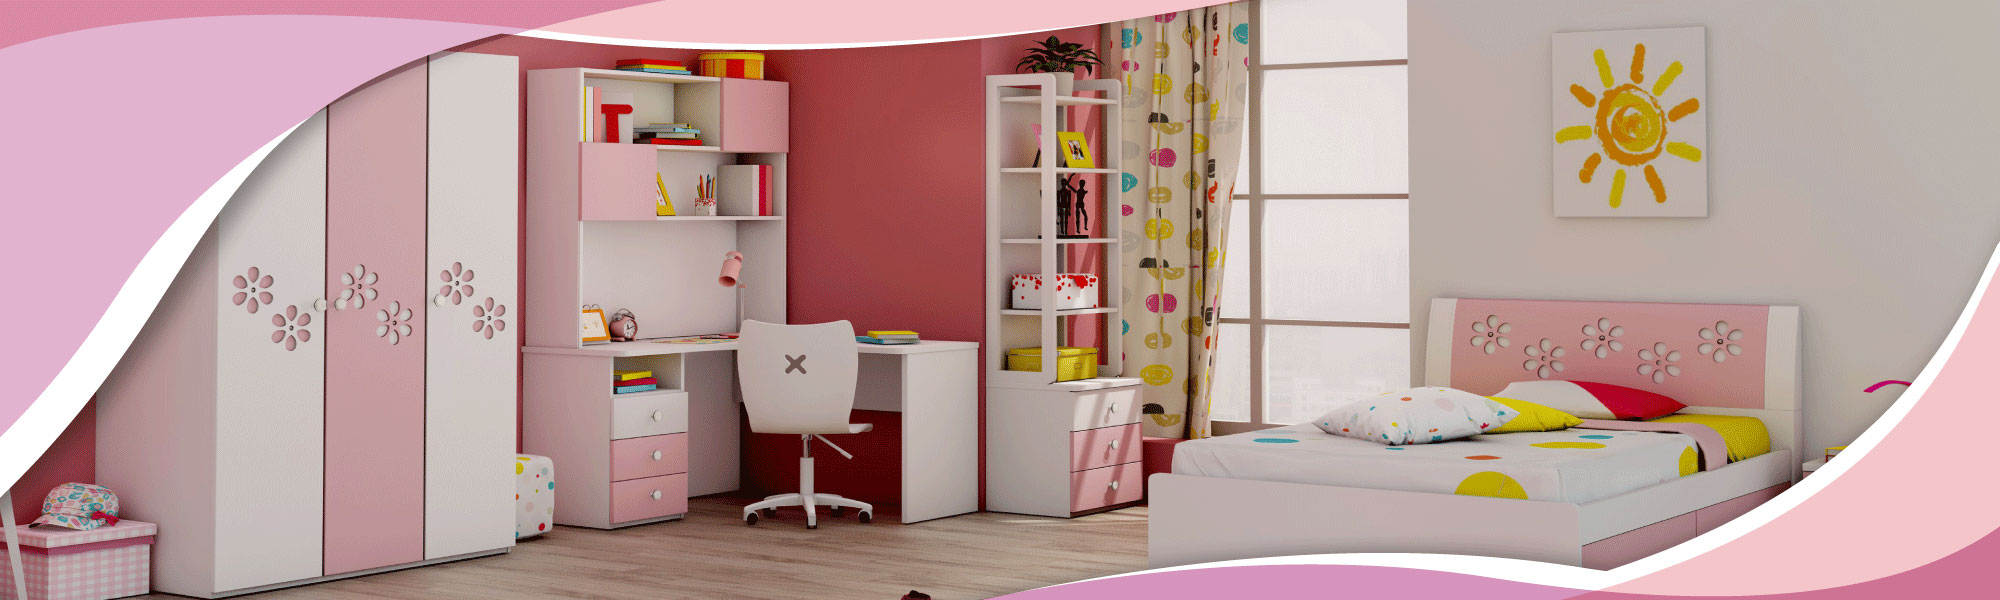 Bring Comfort And Safety In Your Childu0027s Room With Exclusive Furniture